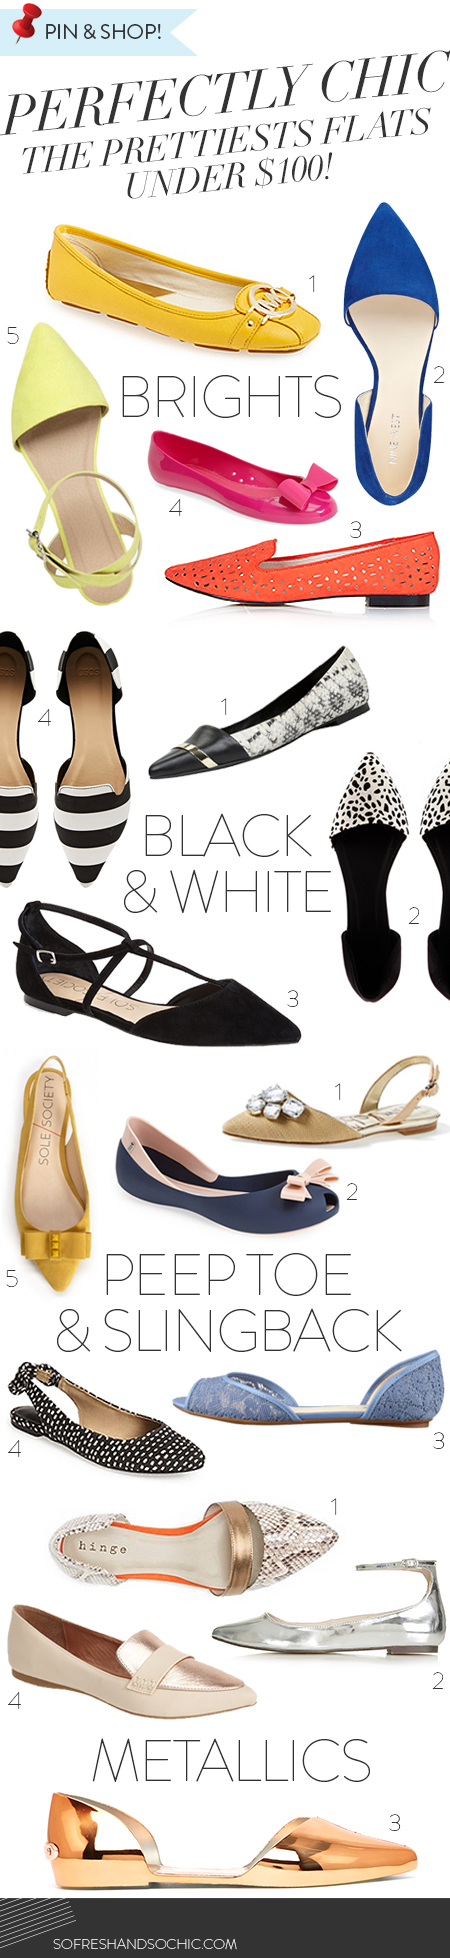 So Fresh & So Chic // The Prettiest Flats Under $100!